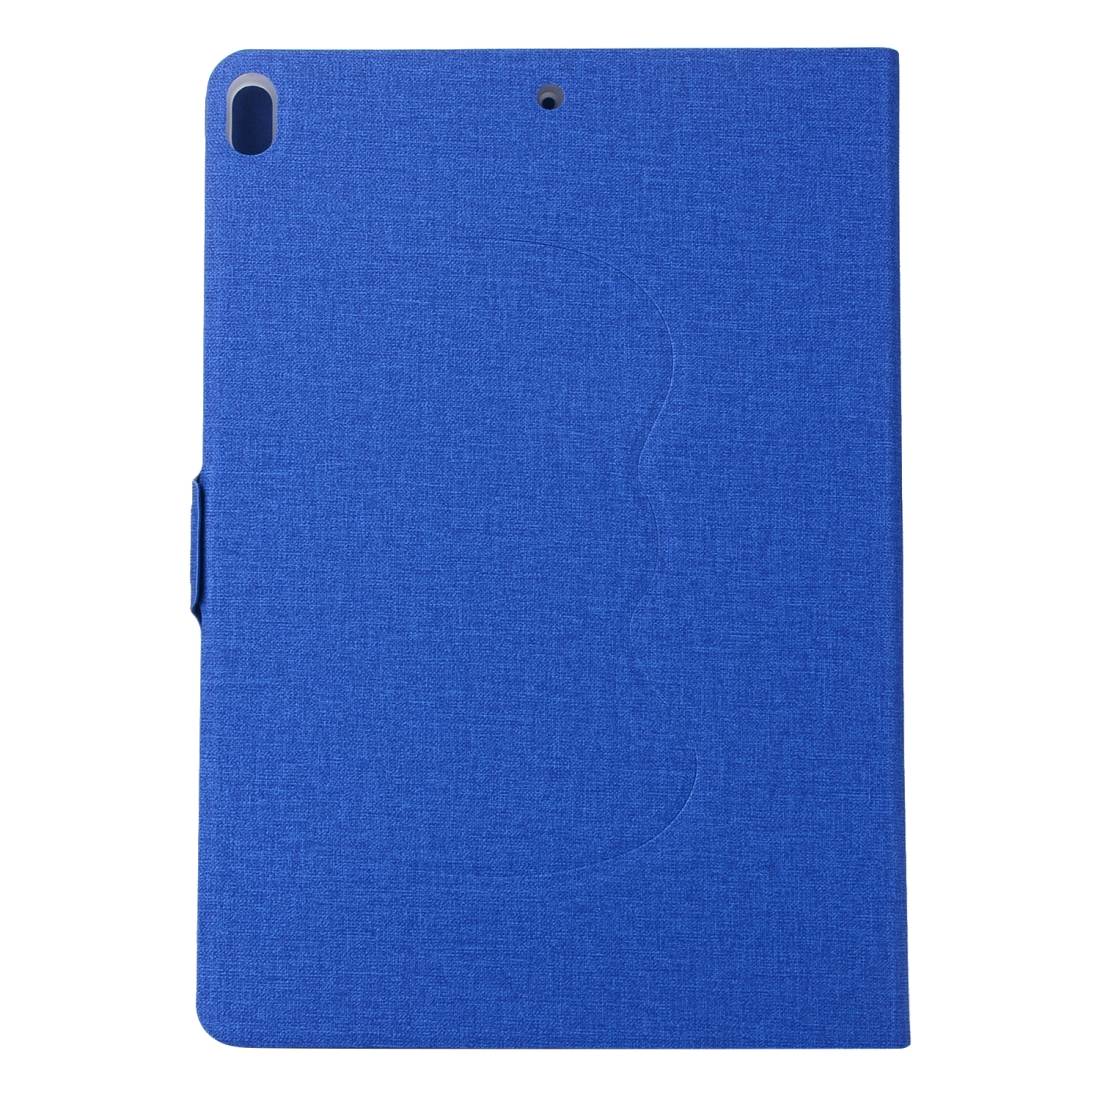 Cloth Texture Leather Case with 360 Degrees Rotation Stand For iPad Pro 10.5 inch (Blue)